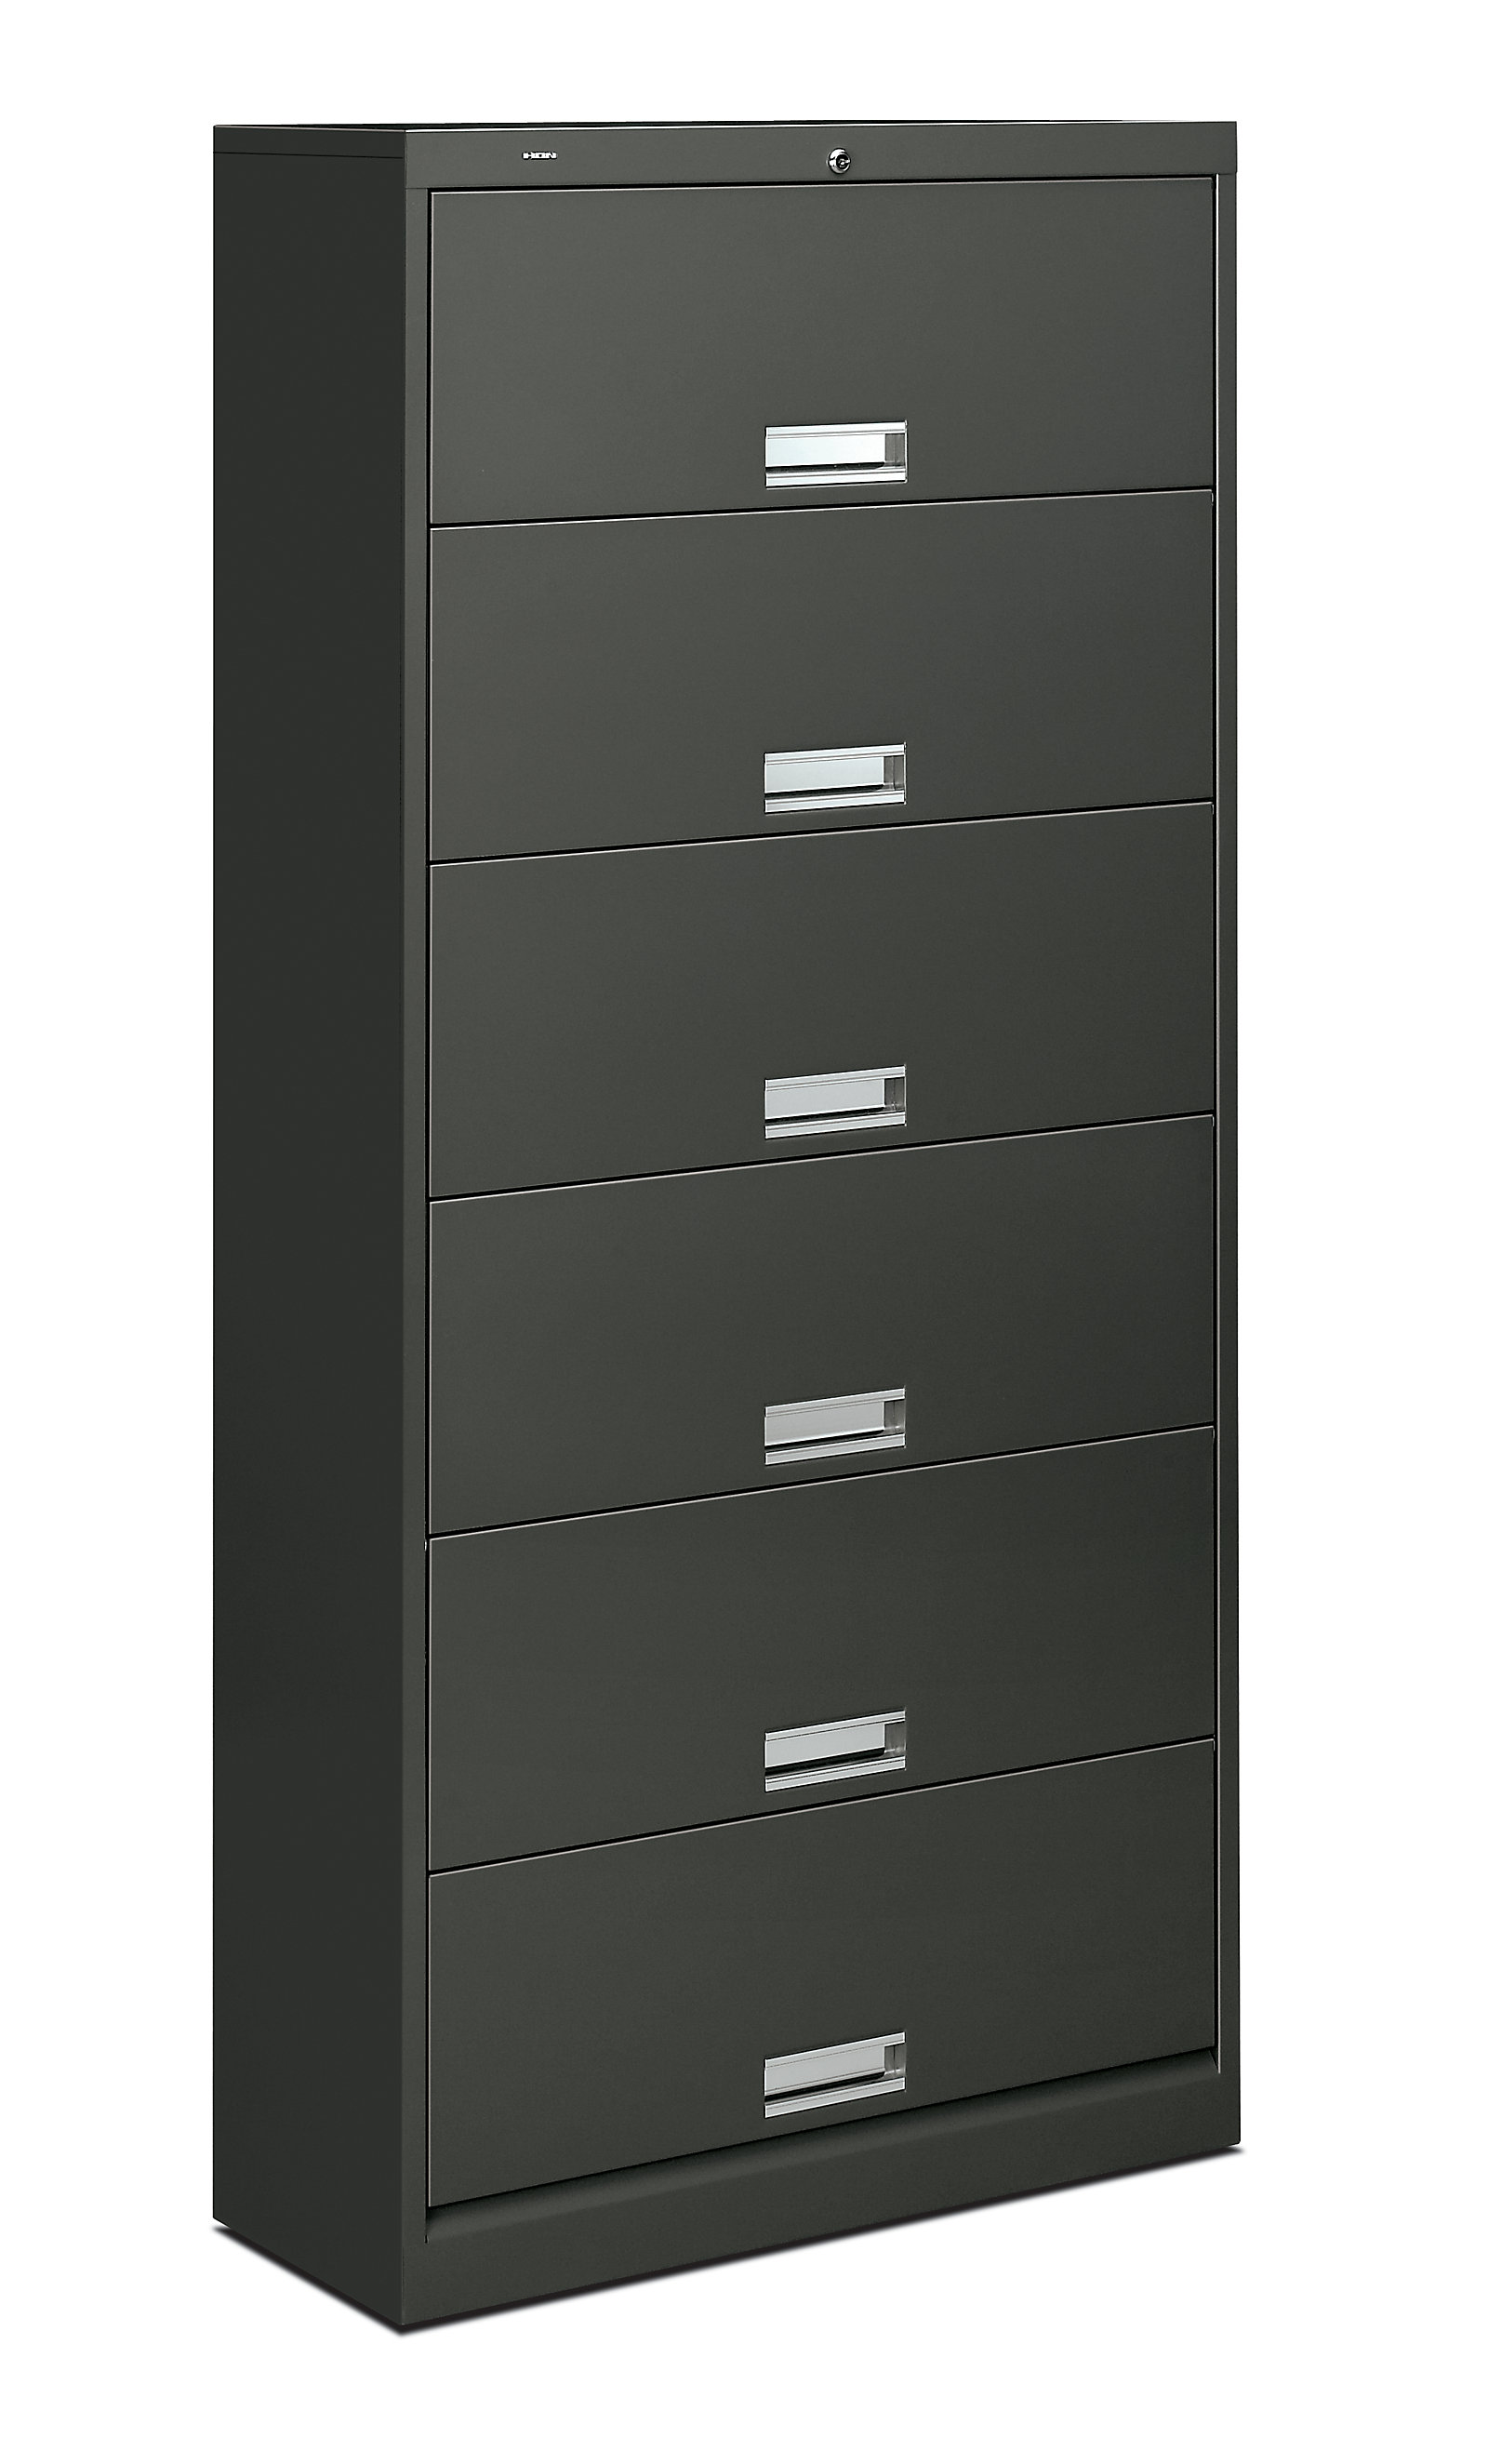 drawers filing cabinets design storage black lateral graceful cheap cabinet walmart locking hon amazing with outdoor file interior six exciting drawer at for ipads